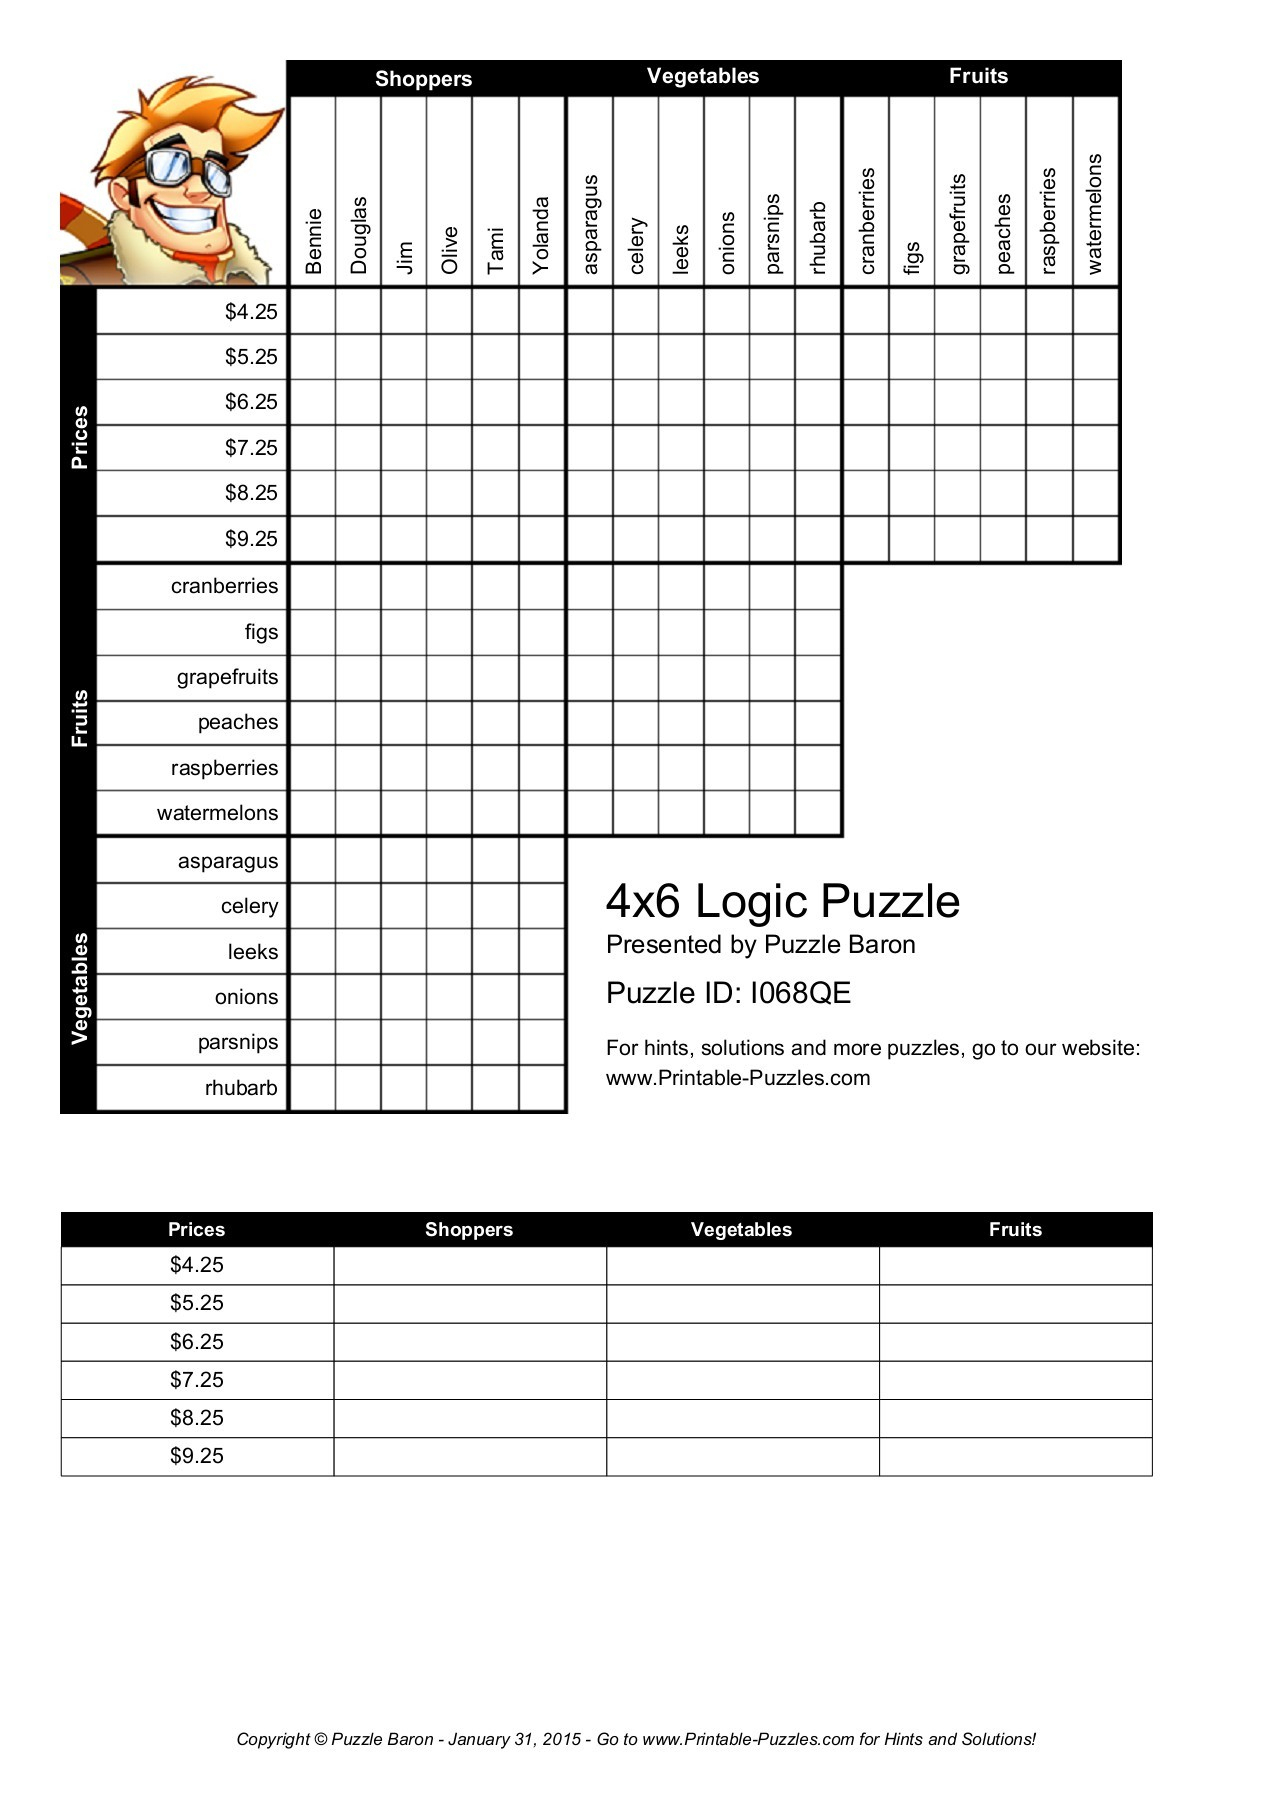 image about Printable Logic Puzzle named Printable Logic Puzzles 4X6 Printable Crossword Puzzles